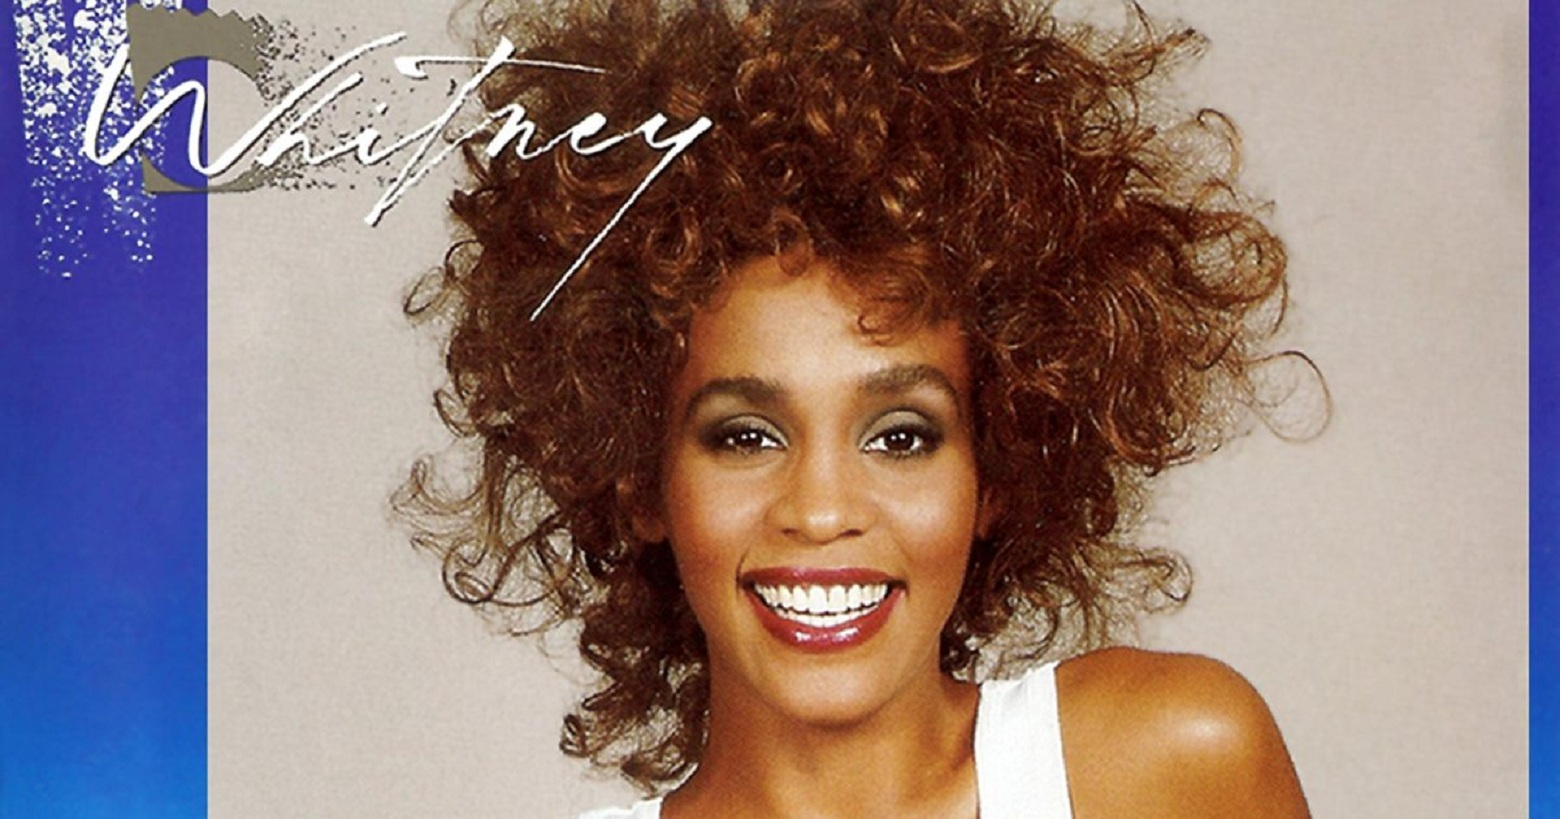 Poll: Vote for the best song from Whitney Houston's second album, 'Whitney'